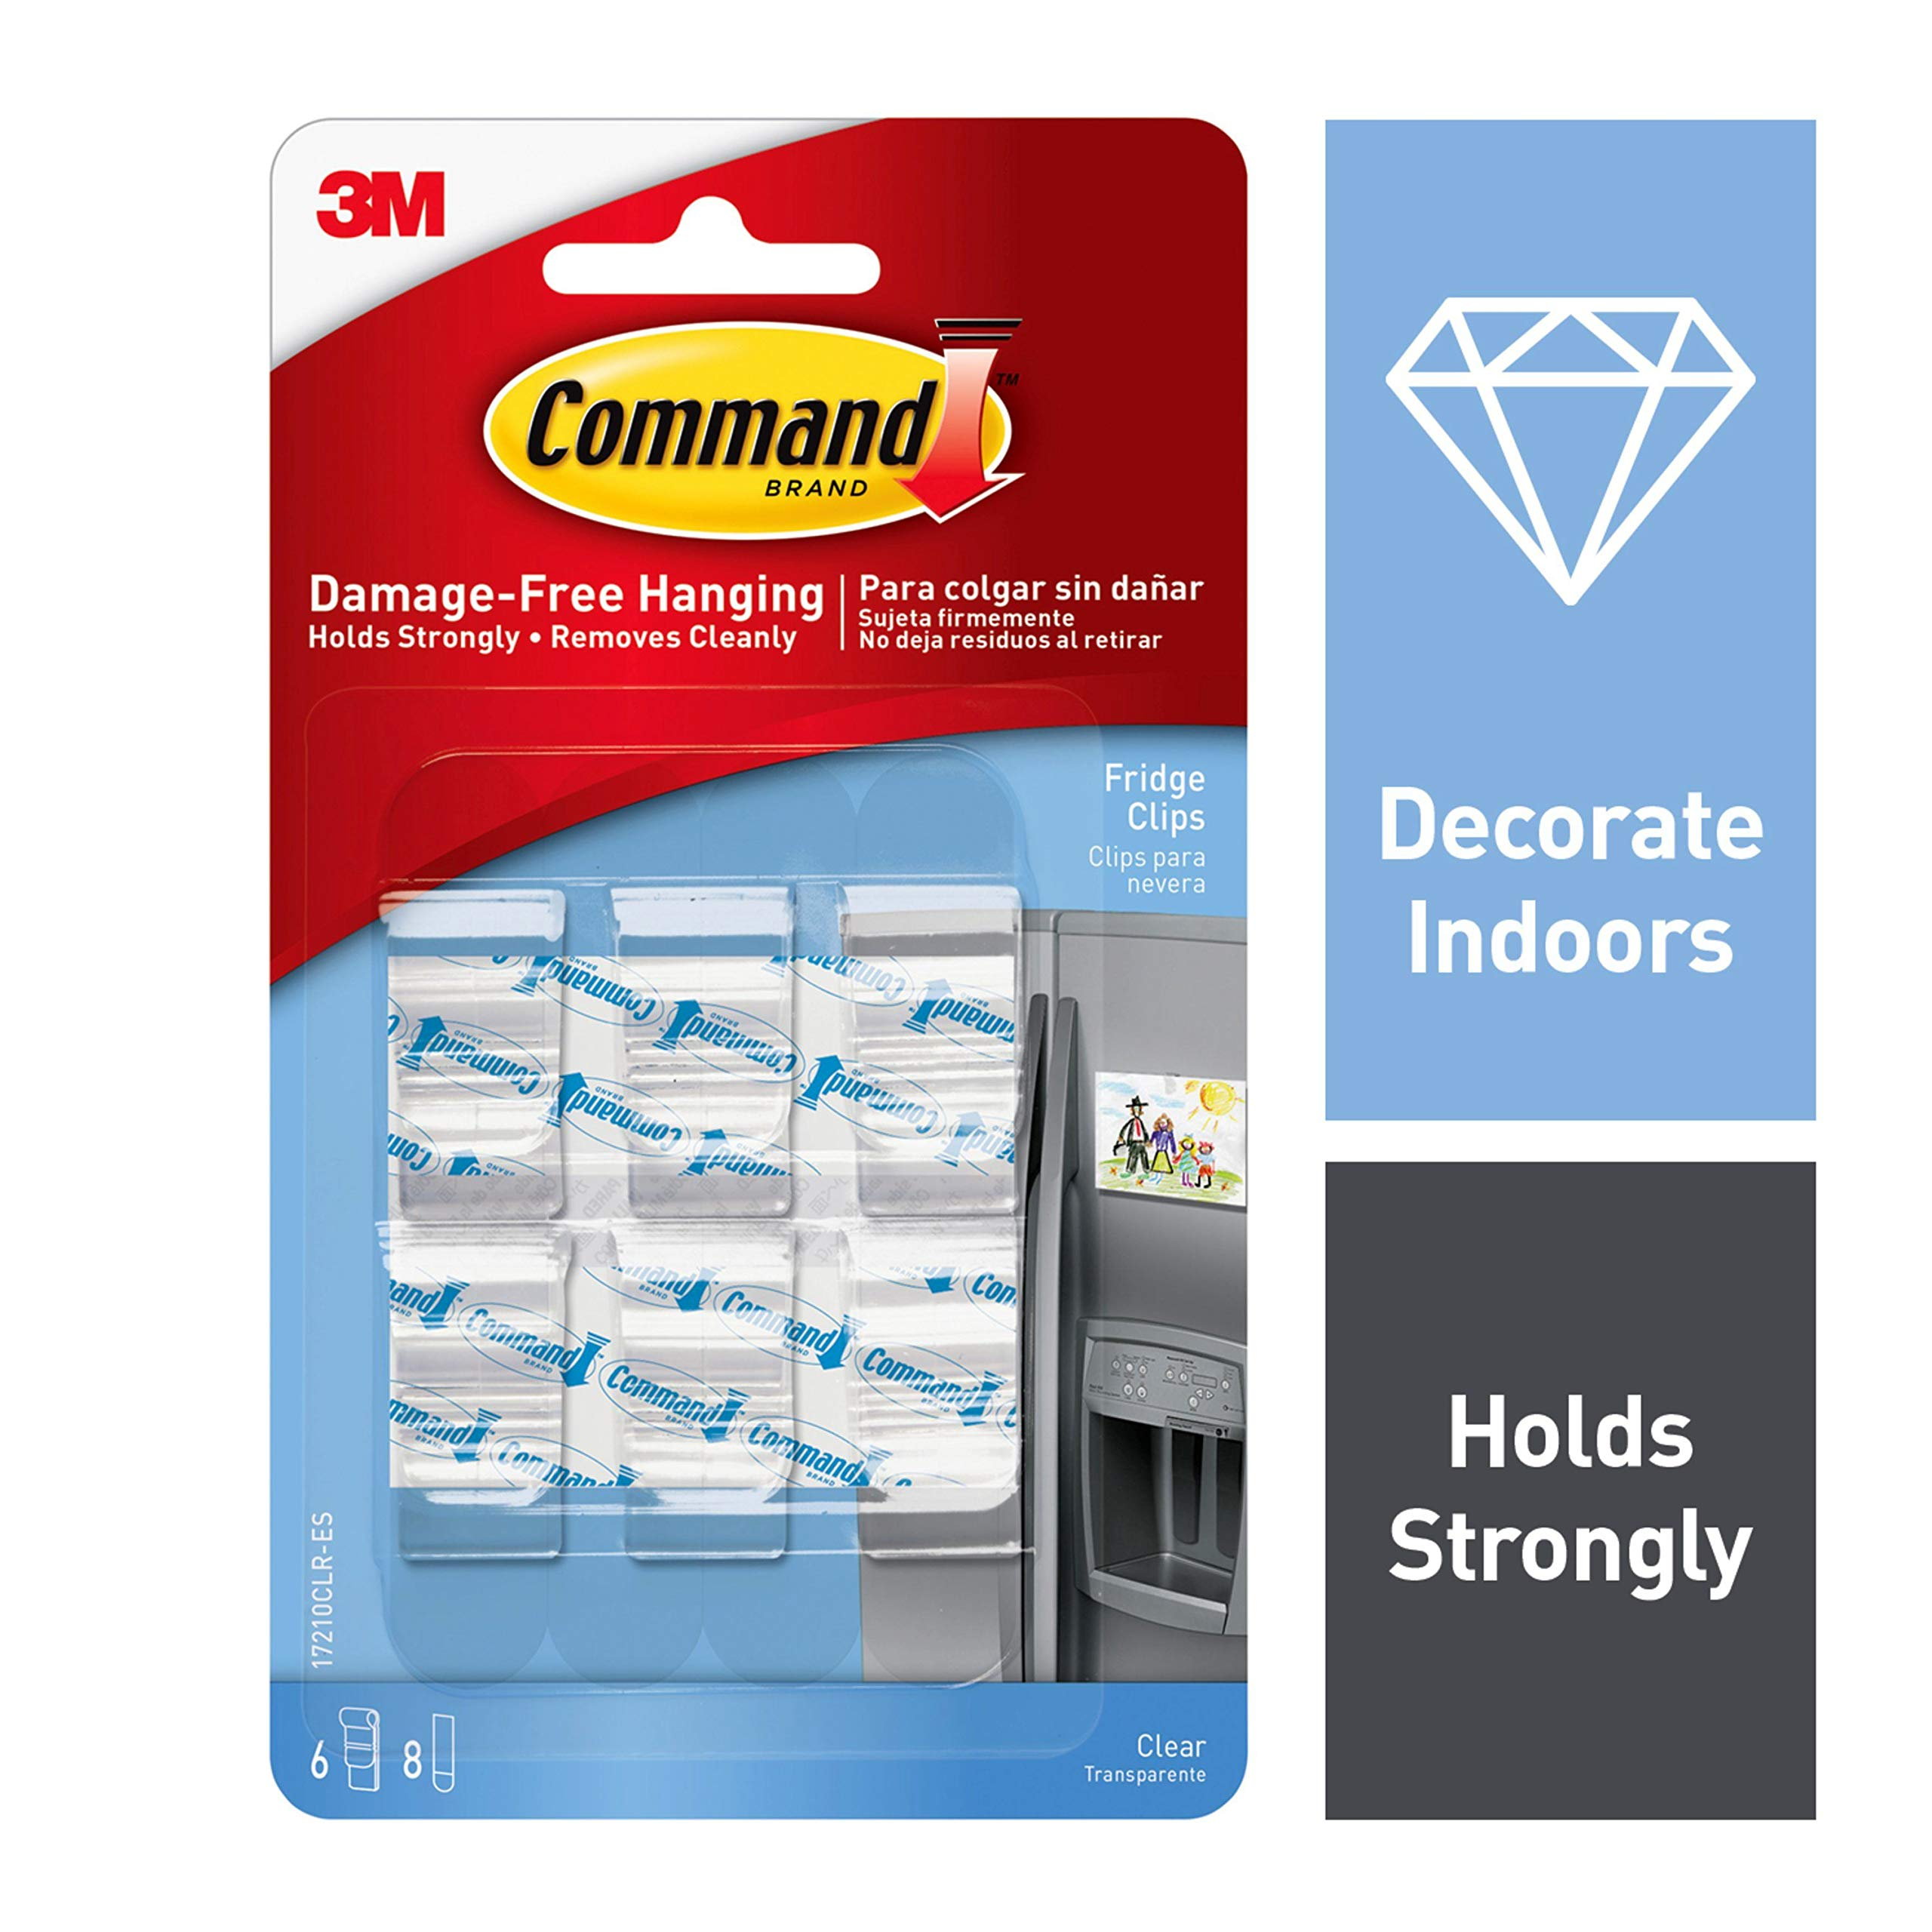 Command Fridge Clips, Clear, 6-Clips (17210CLR) by Command (Image #1)